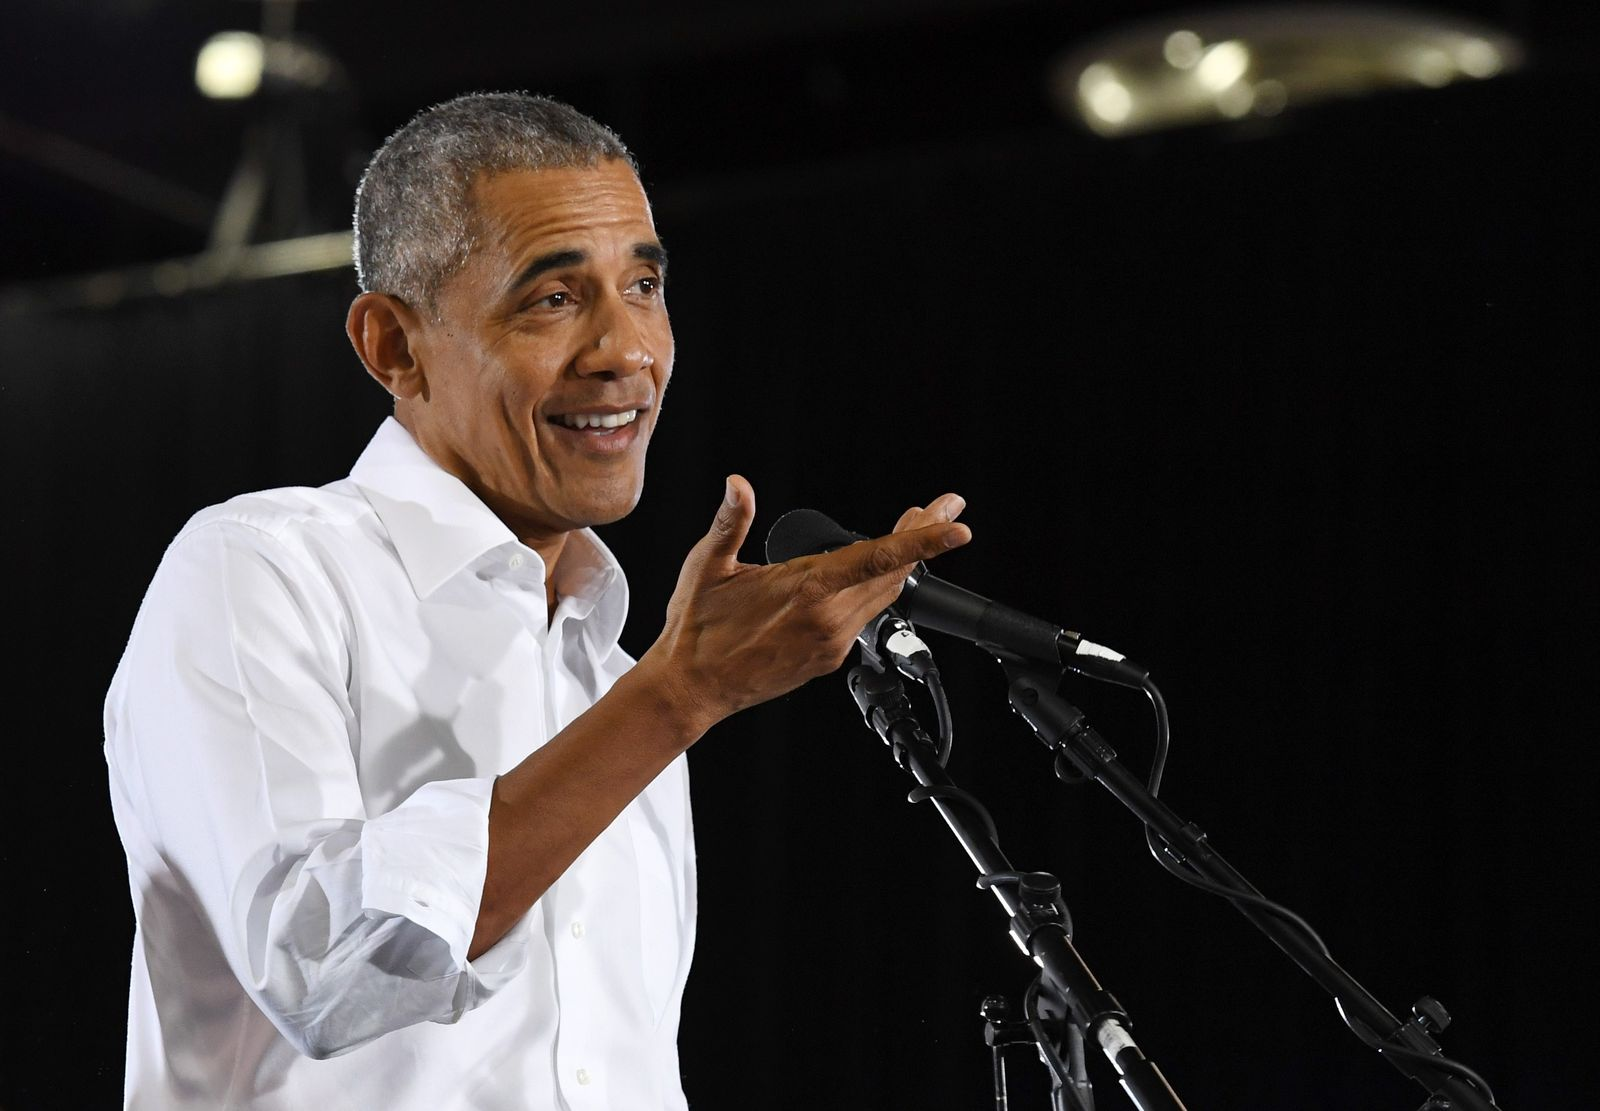 US-FORMER-PRESIDENT-OBAMA-SPEAKS-AT-RALLY-FOR-NEVADA-DEMOCRATS-I